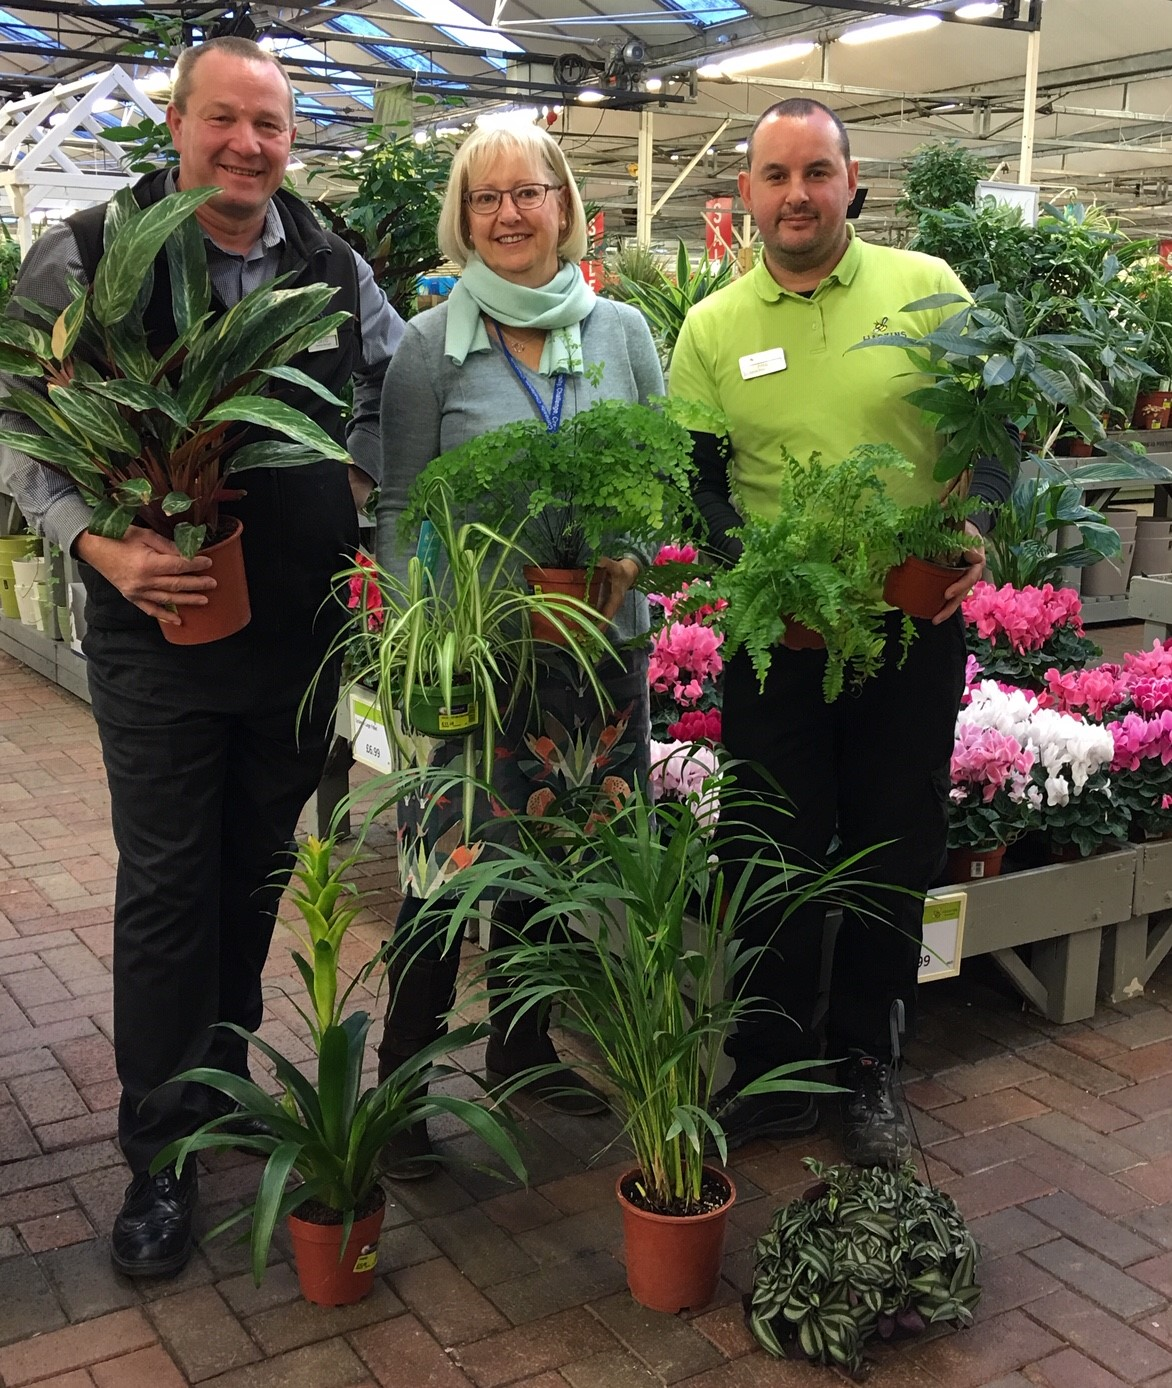 Haskins Garden Centre in Snowhill partners with Copthorne C.E. Junior School to donate houseplants